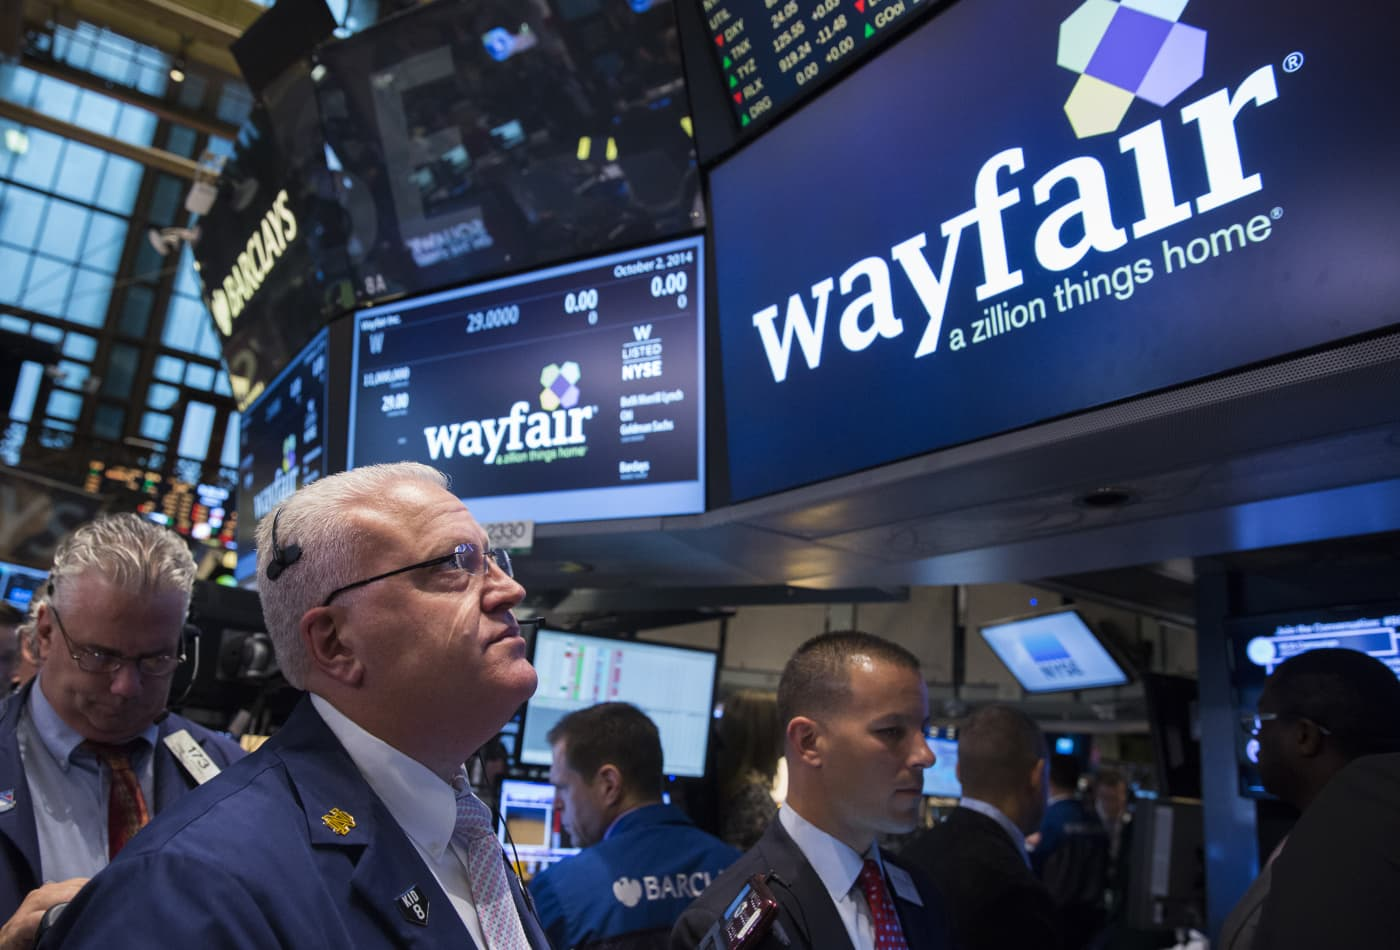 Stocks making the biggest moves midday: Wayfair, Western Union, RH, Facebook and more